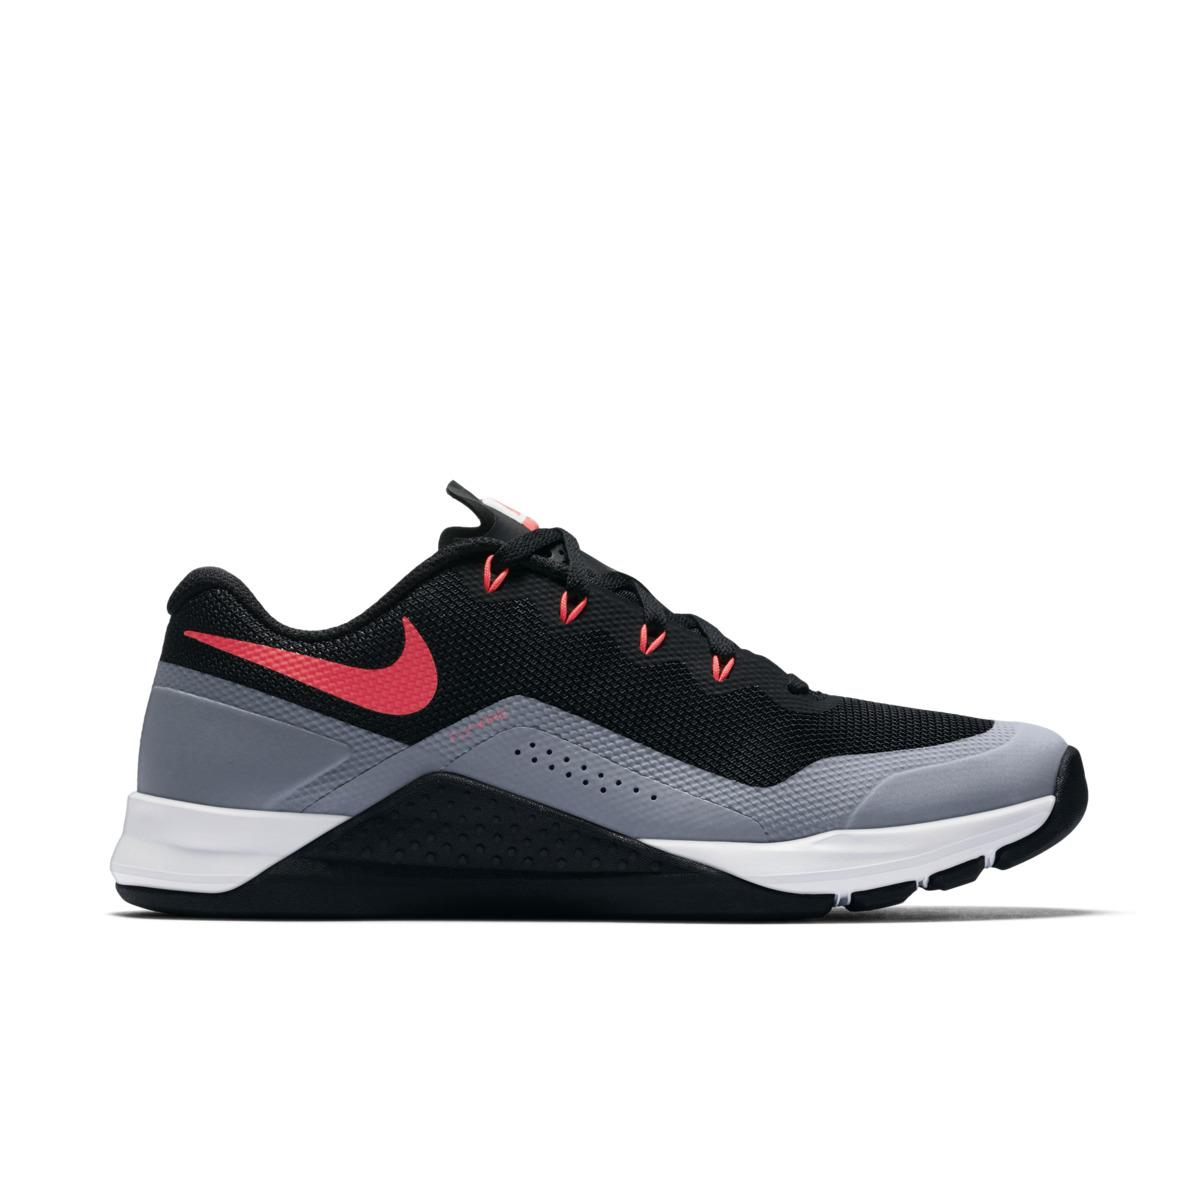 3db0dcaa06d8d Lyst - Nike Metcon Repper Dsx Fitness/cross Training Shoes for Men